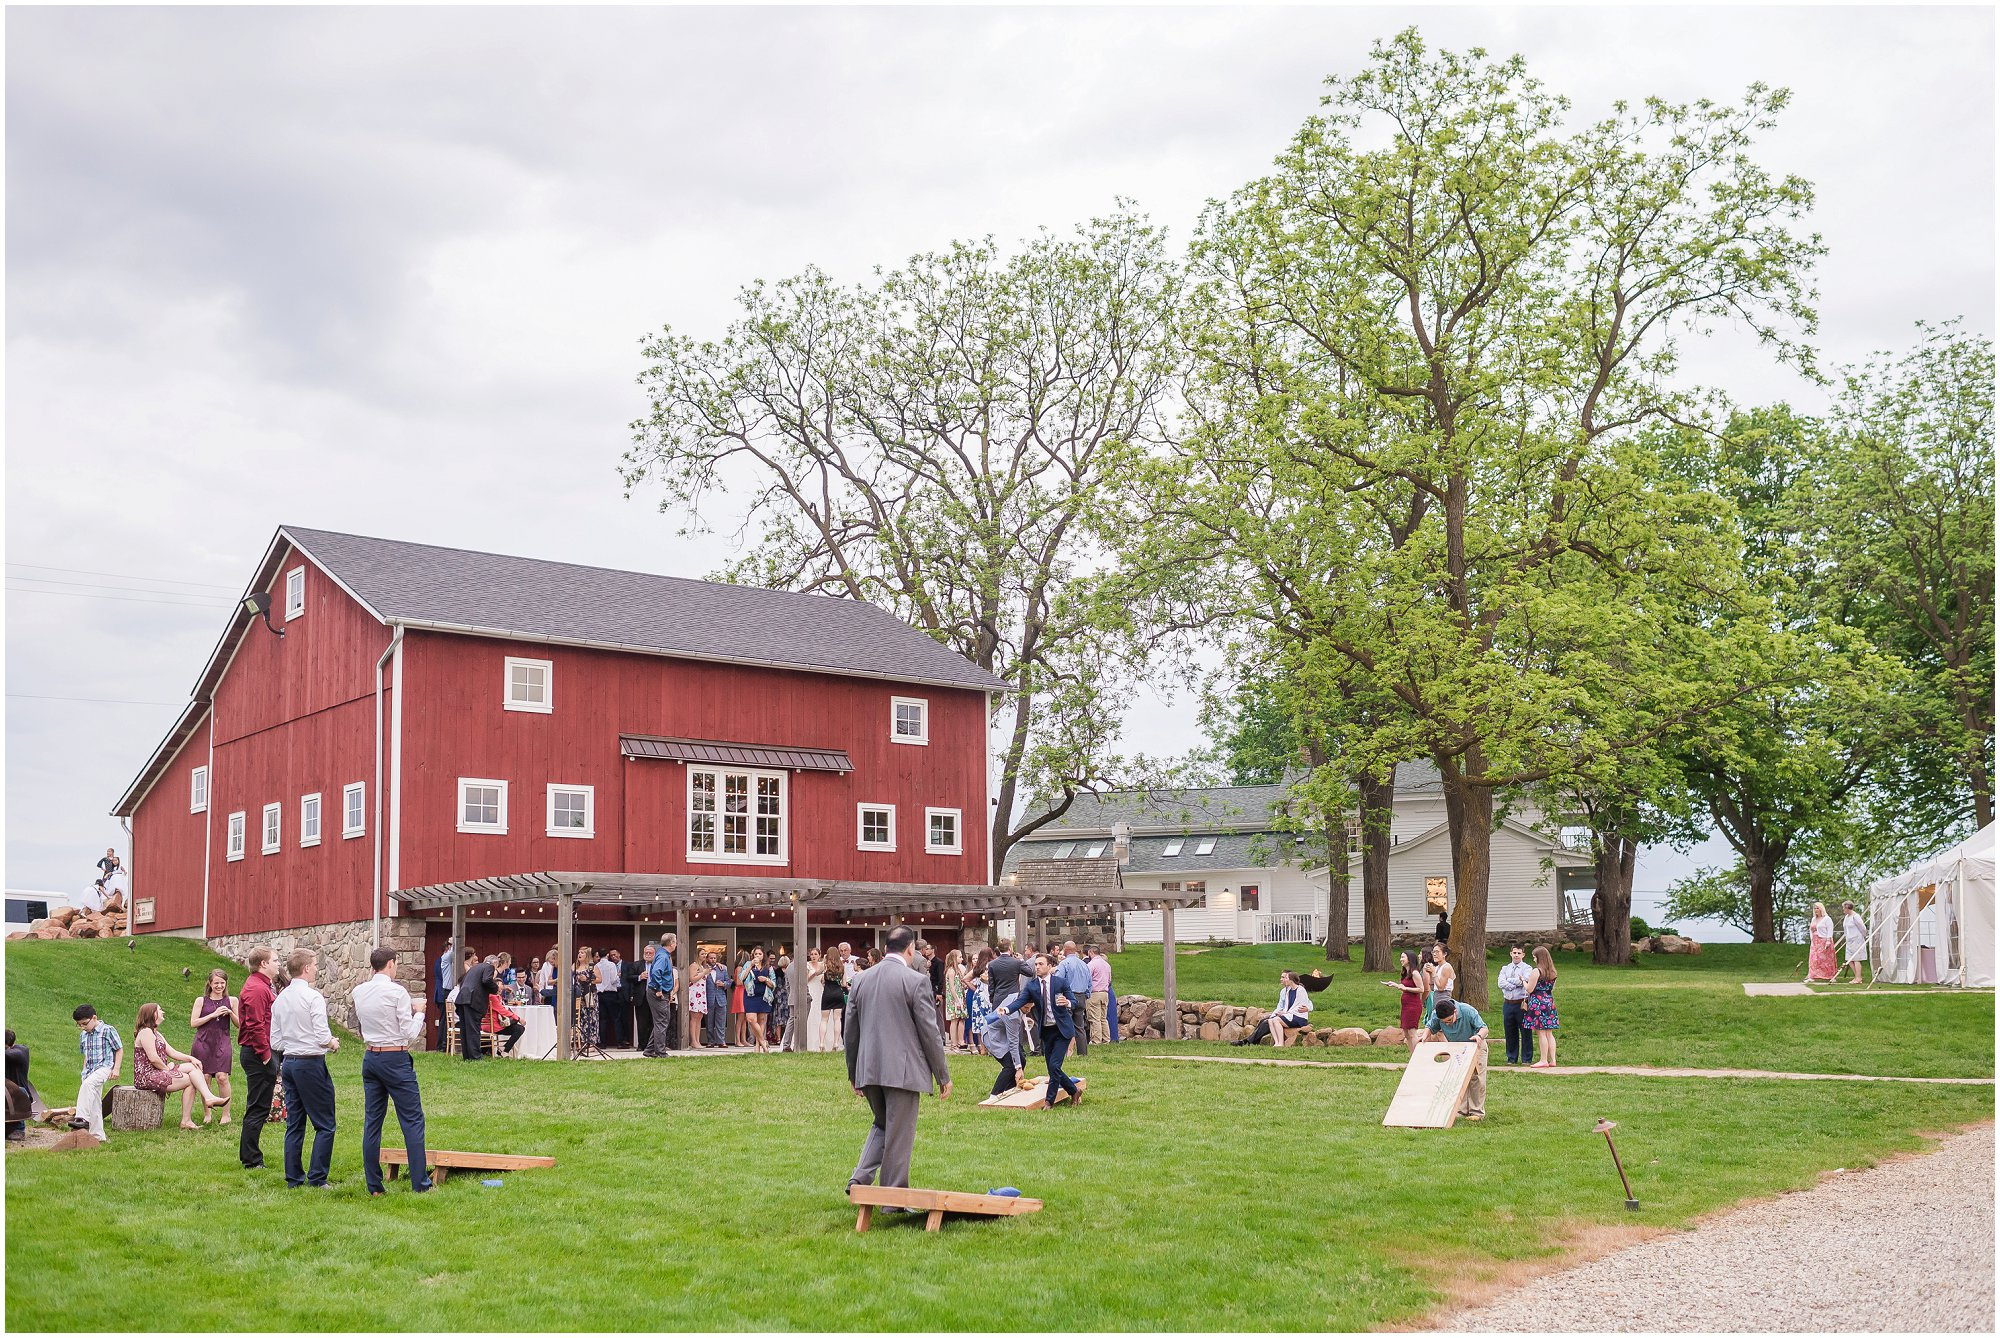 zingermans-cornman-farms-wedding_0902.jpg